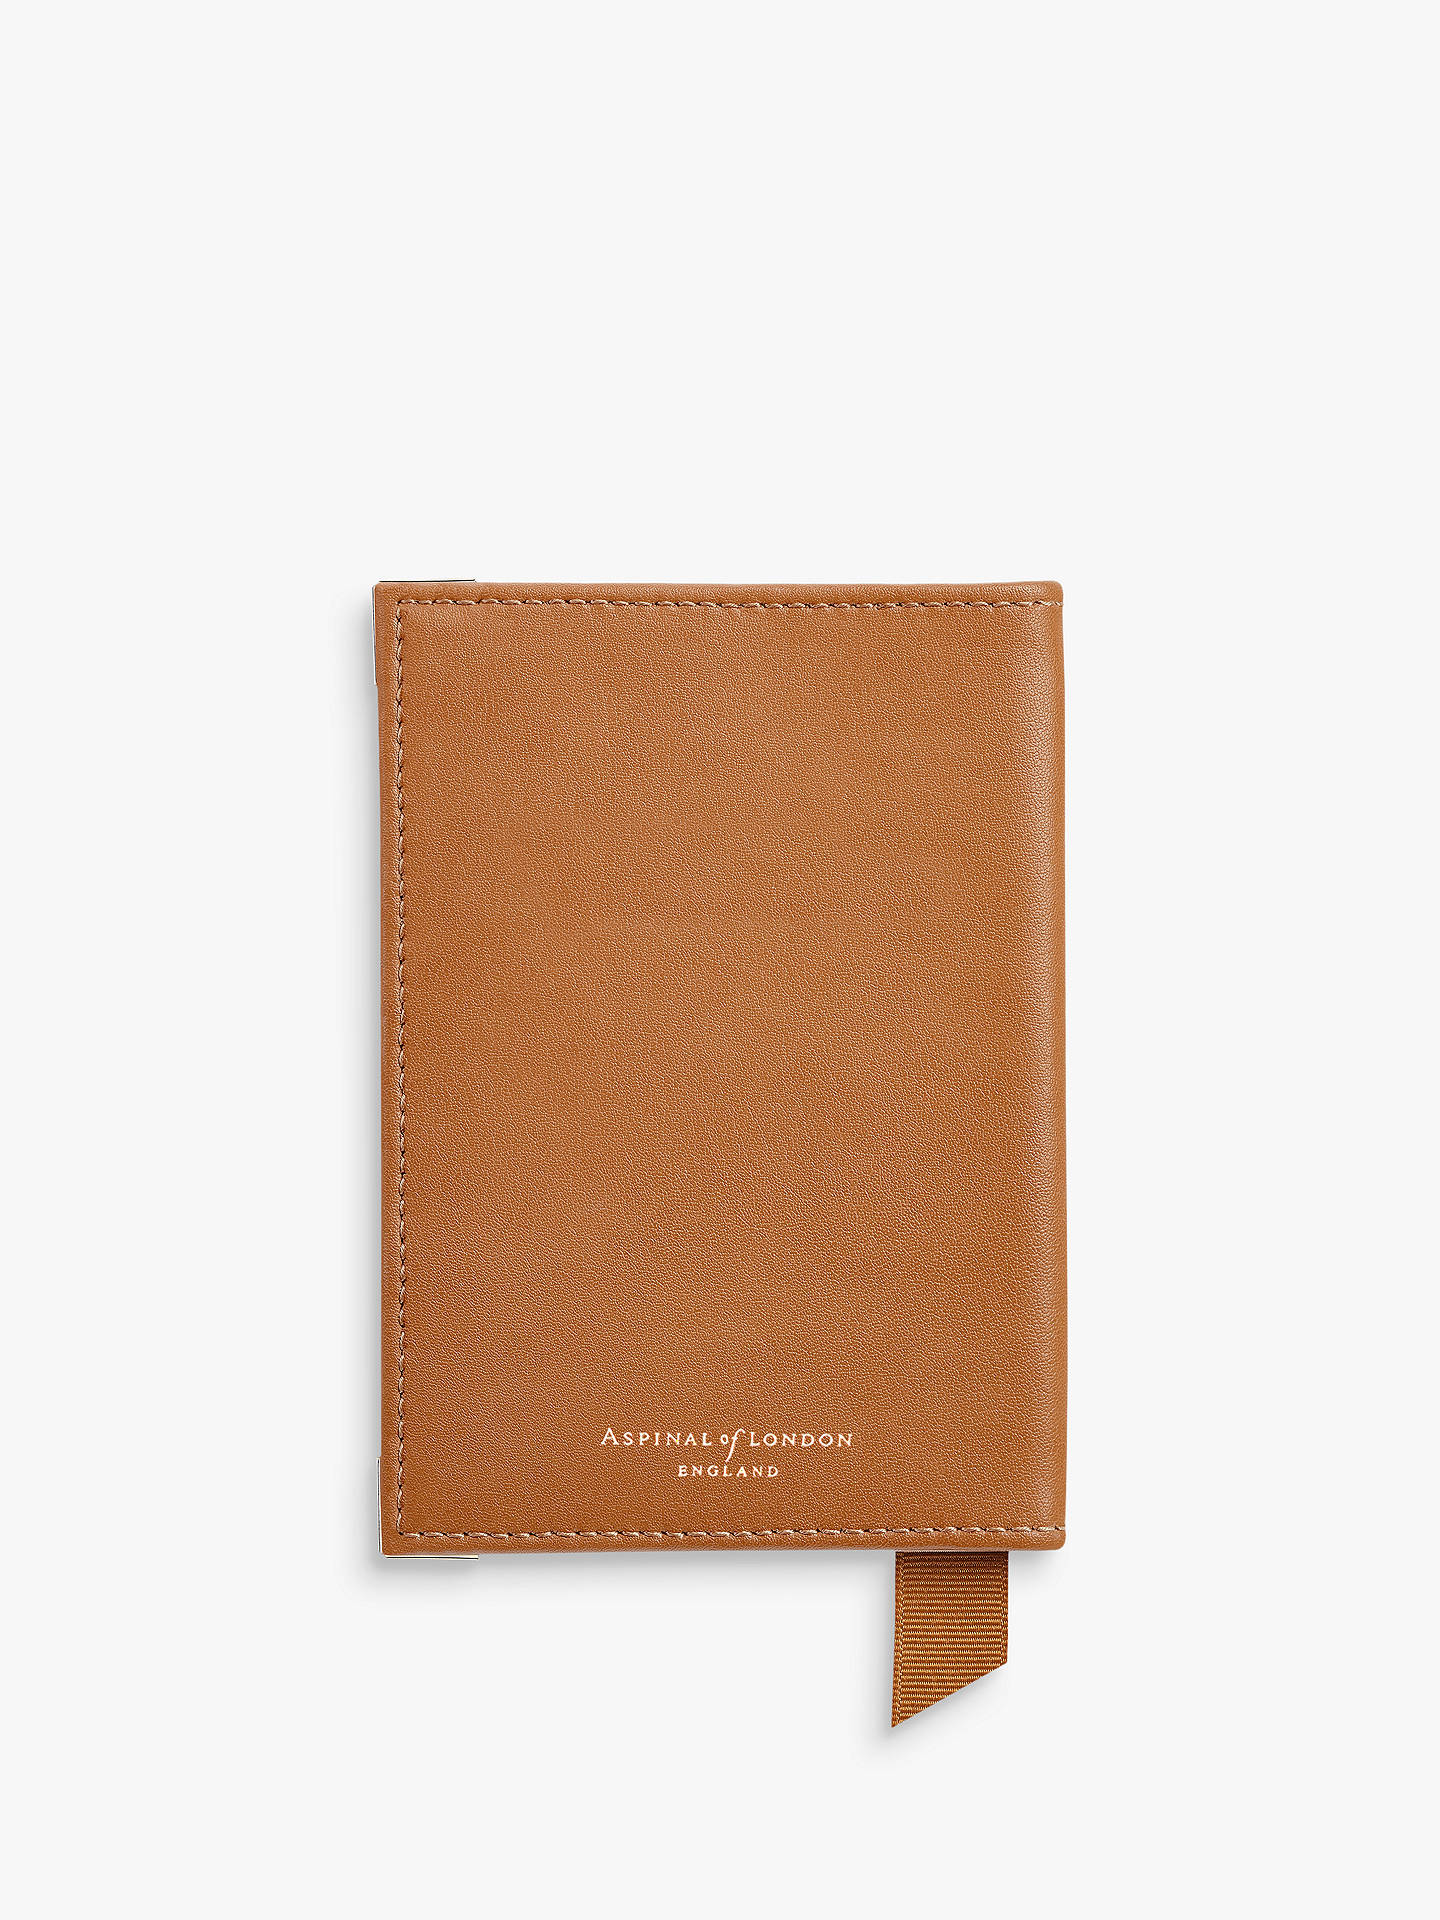 BuyAspinal of London Leather Passport Cover, Tan Online at johnlewis.com